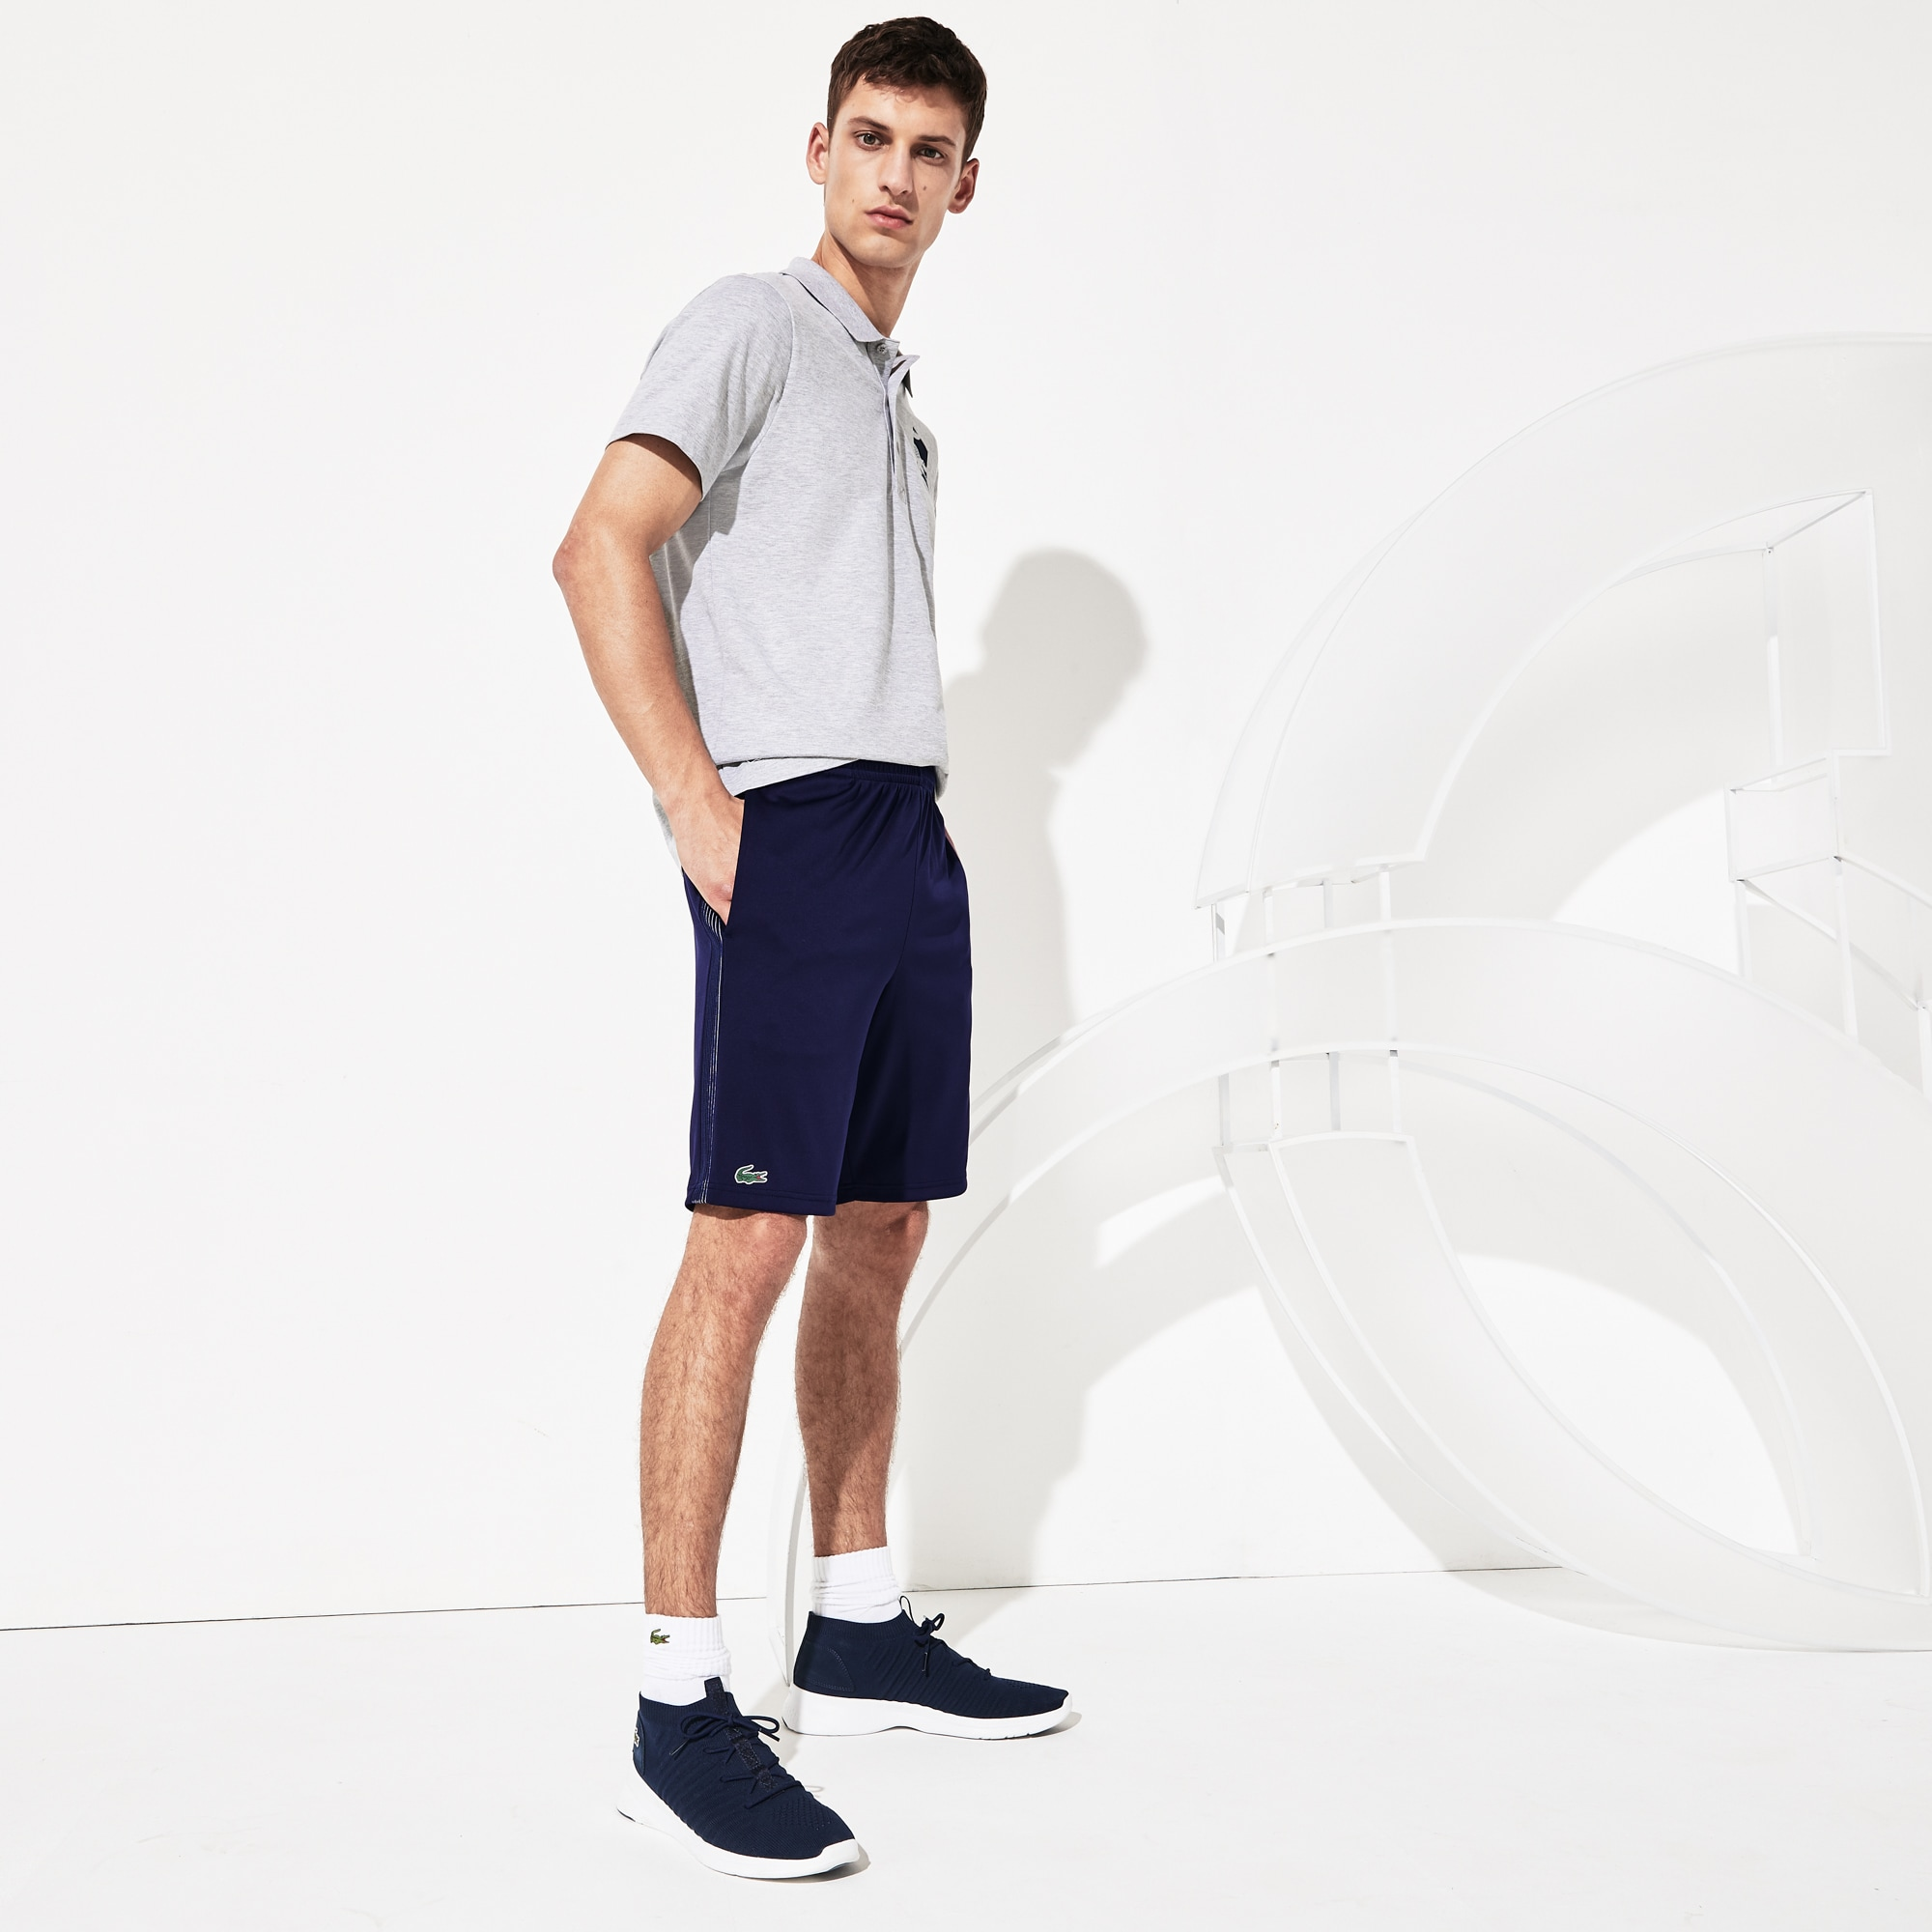 Pantaloncini Lacoste SPORT Collezione Novak Djokovic Support With Style - Off Court in piqué tecnico tinta unita